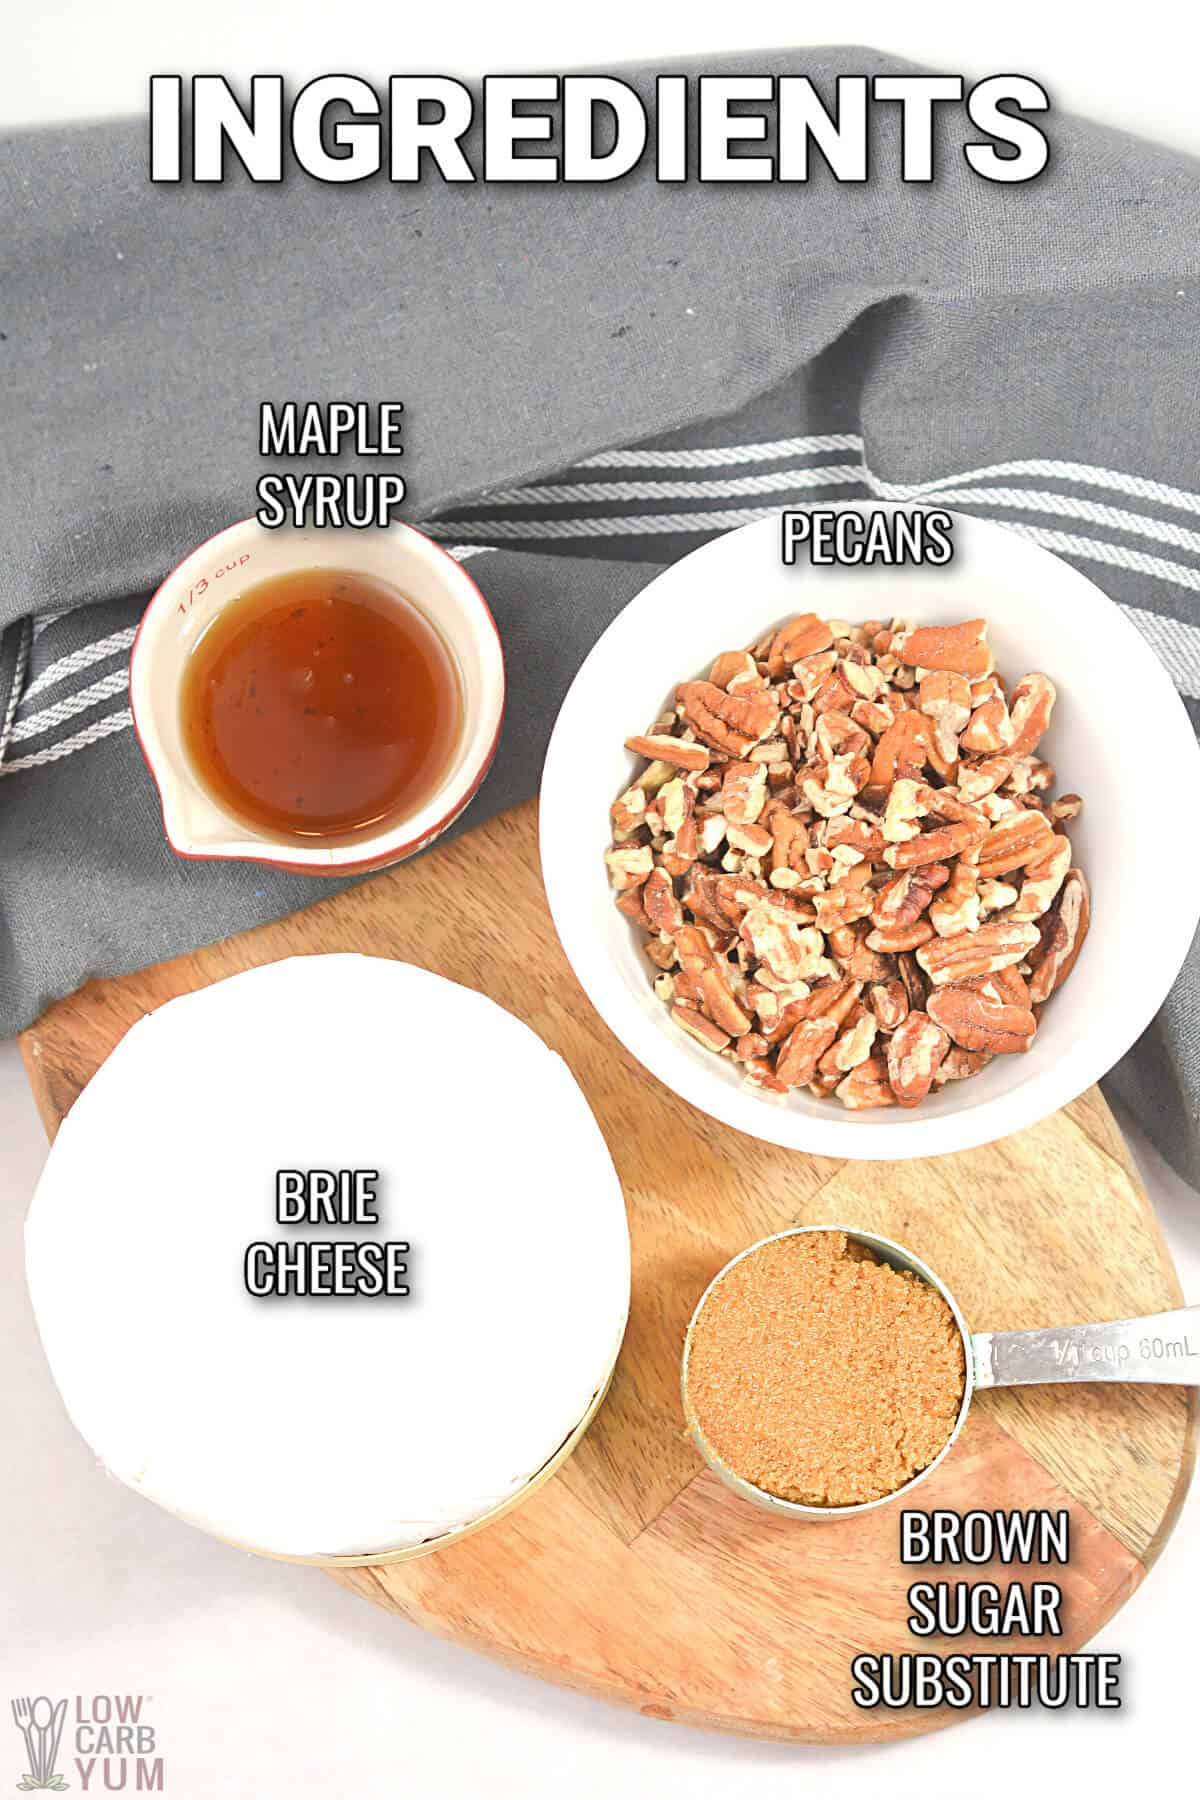 oven baked brie recipe ingredients